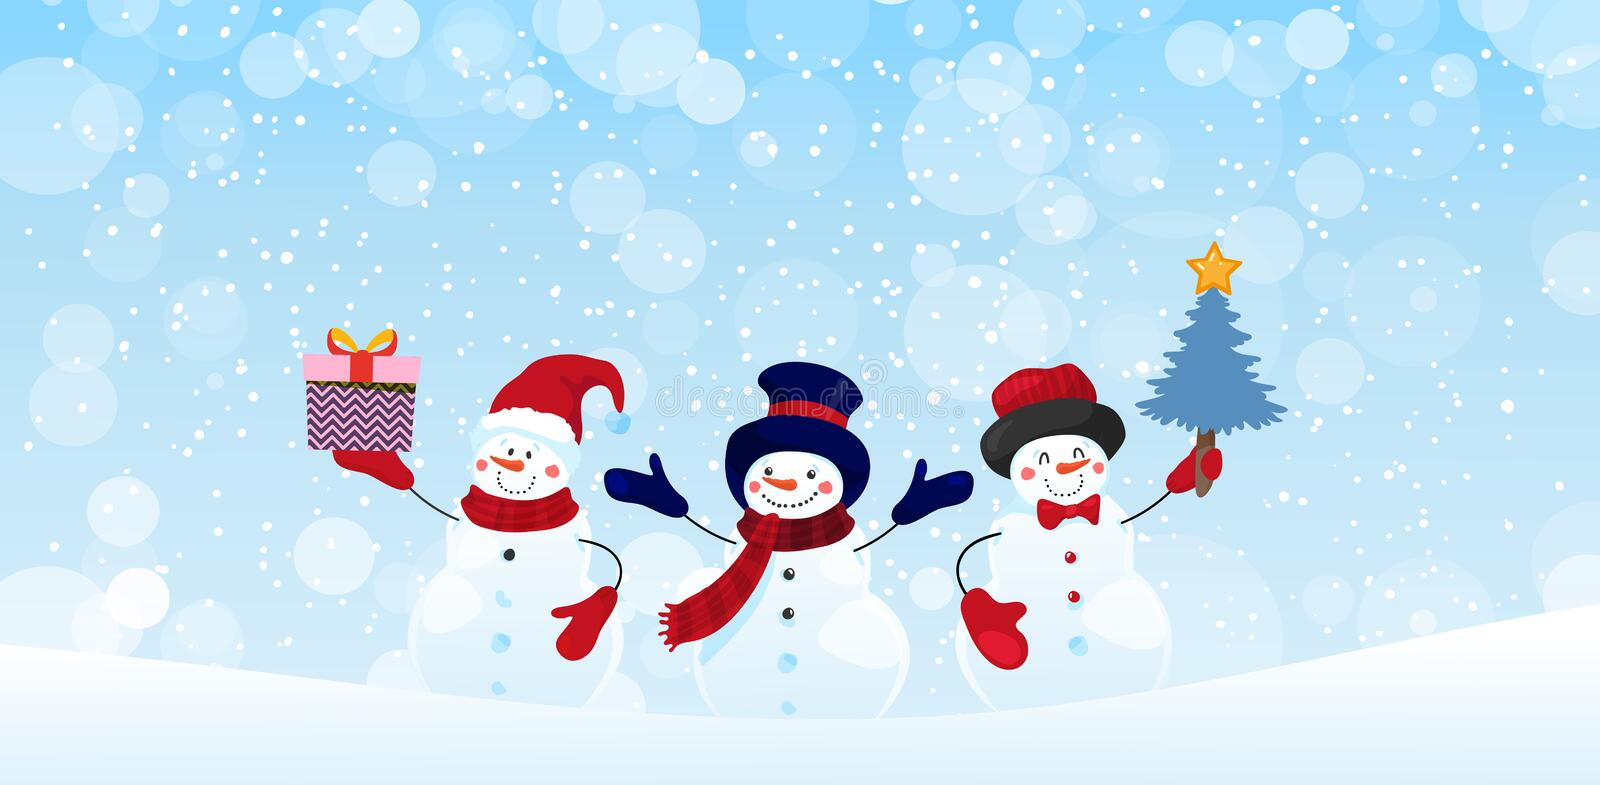 Group of snowman characters with gifts and Christmas tree on a winter snowy background. Christmas banner with holiday design royalty free illustration